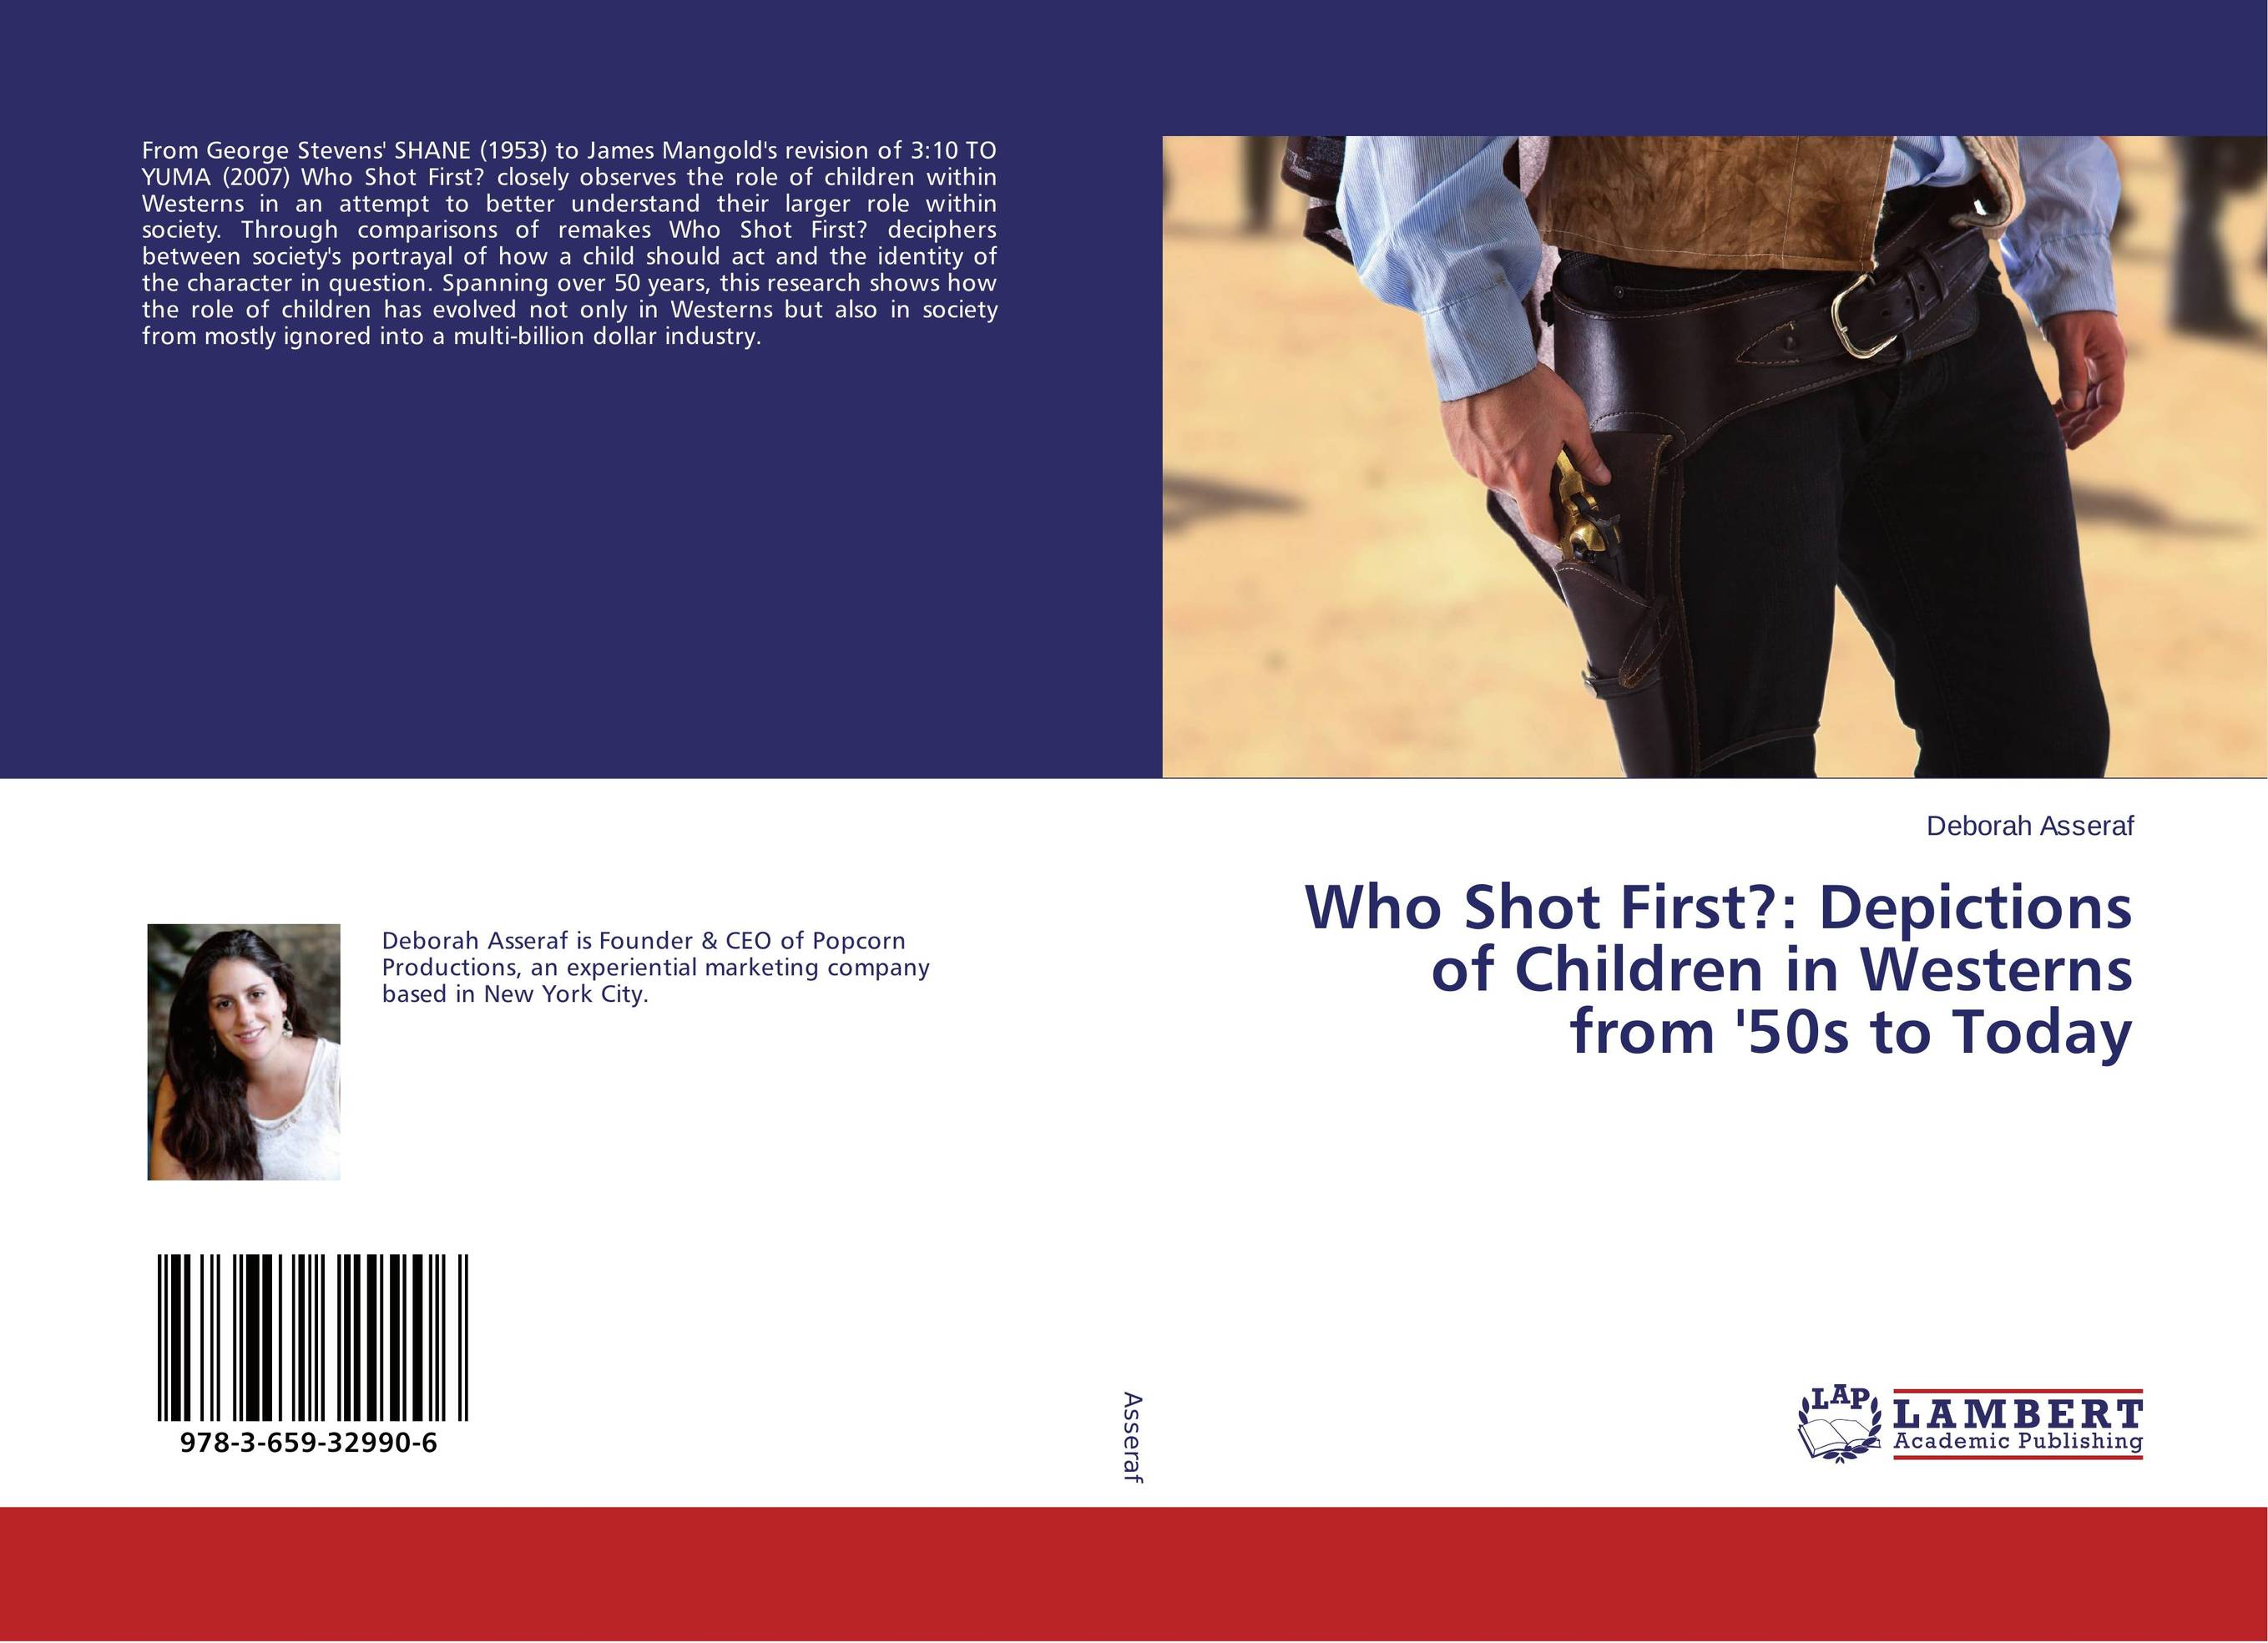 Who Shot First?: Depictions of Children in Westerns from '50s to Today the role of absurdity within english humour